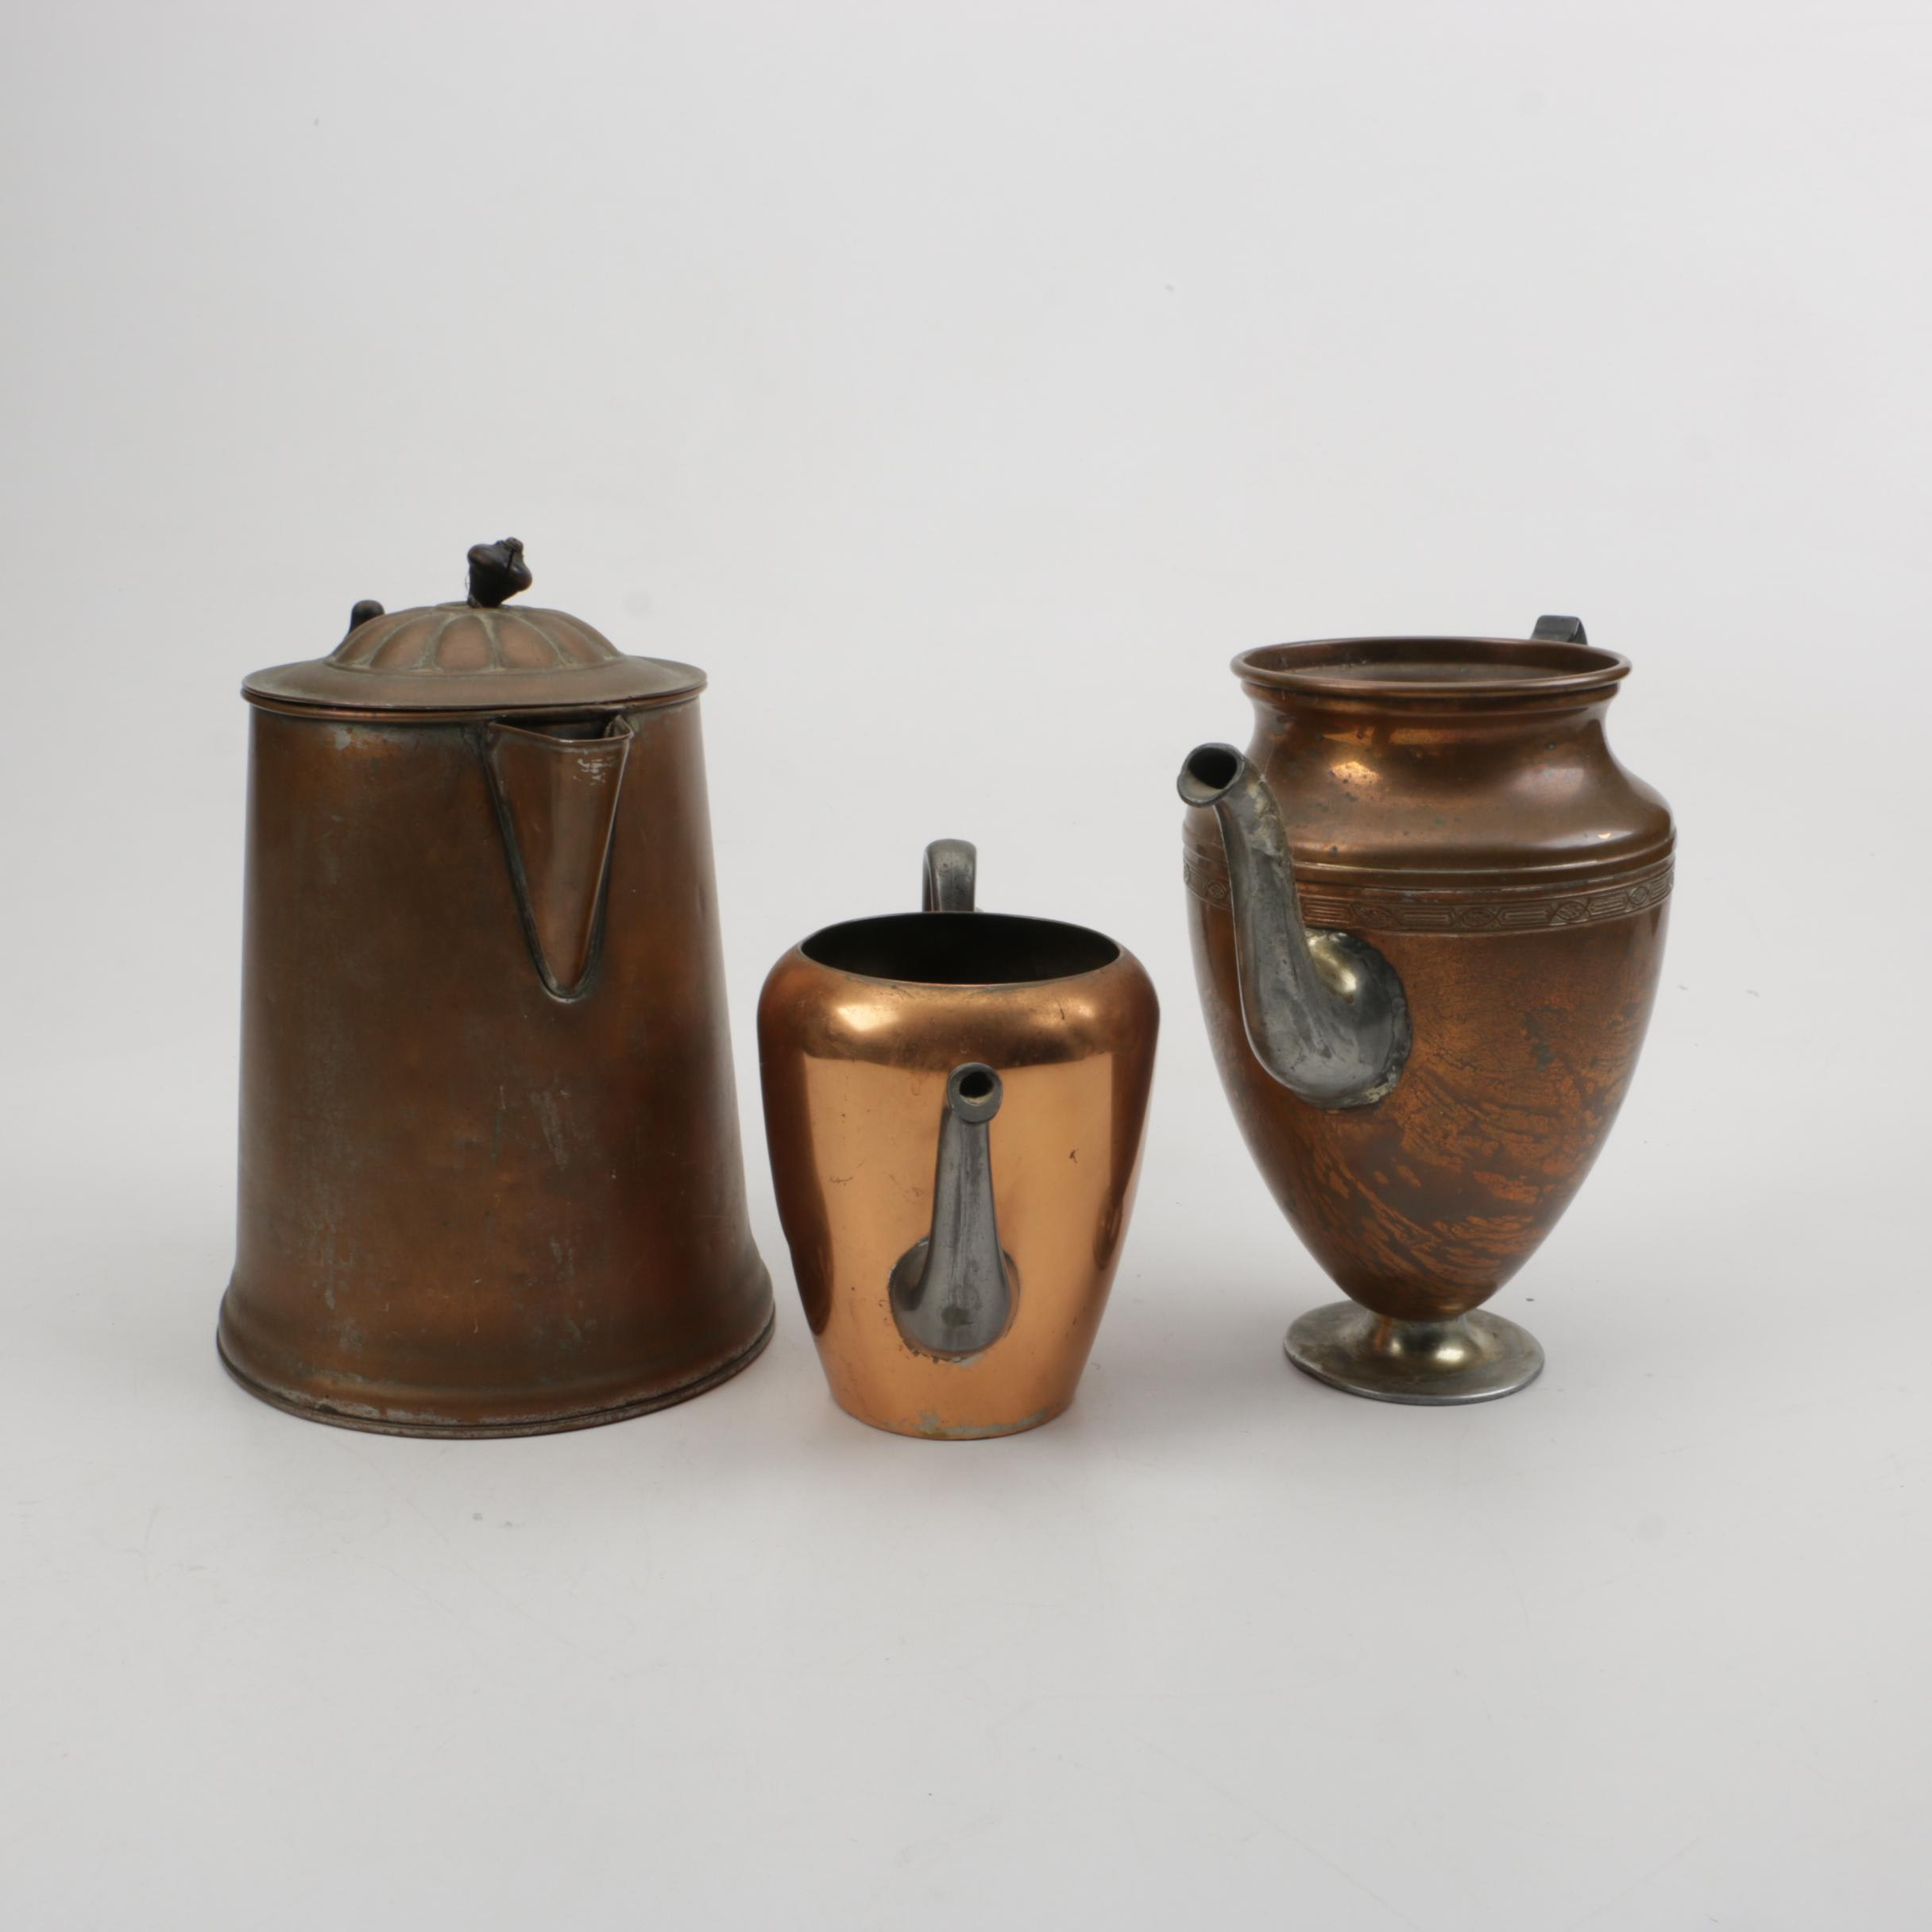 Collection of Copper and Silver Plate Coffee Pots